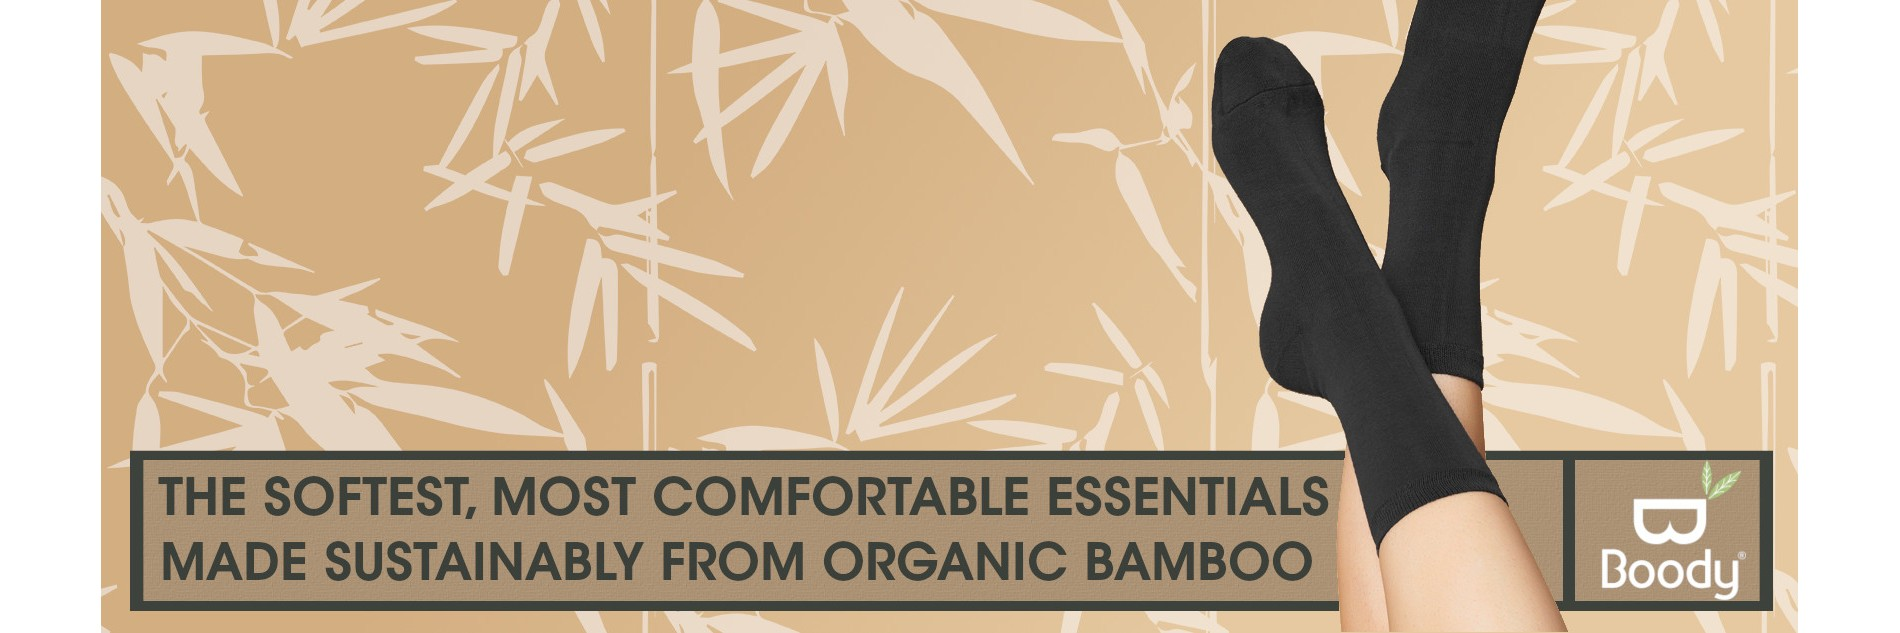 Boody - Essentials made sustainably from organic bamboo